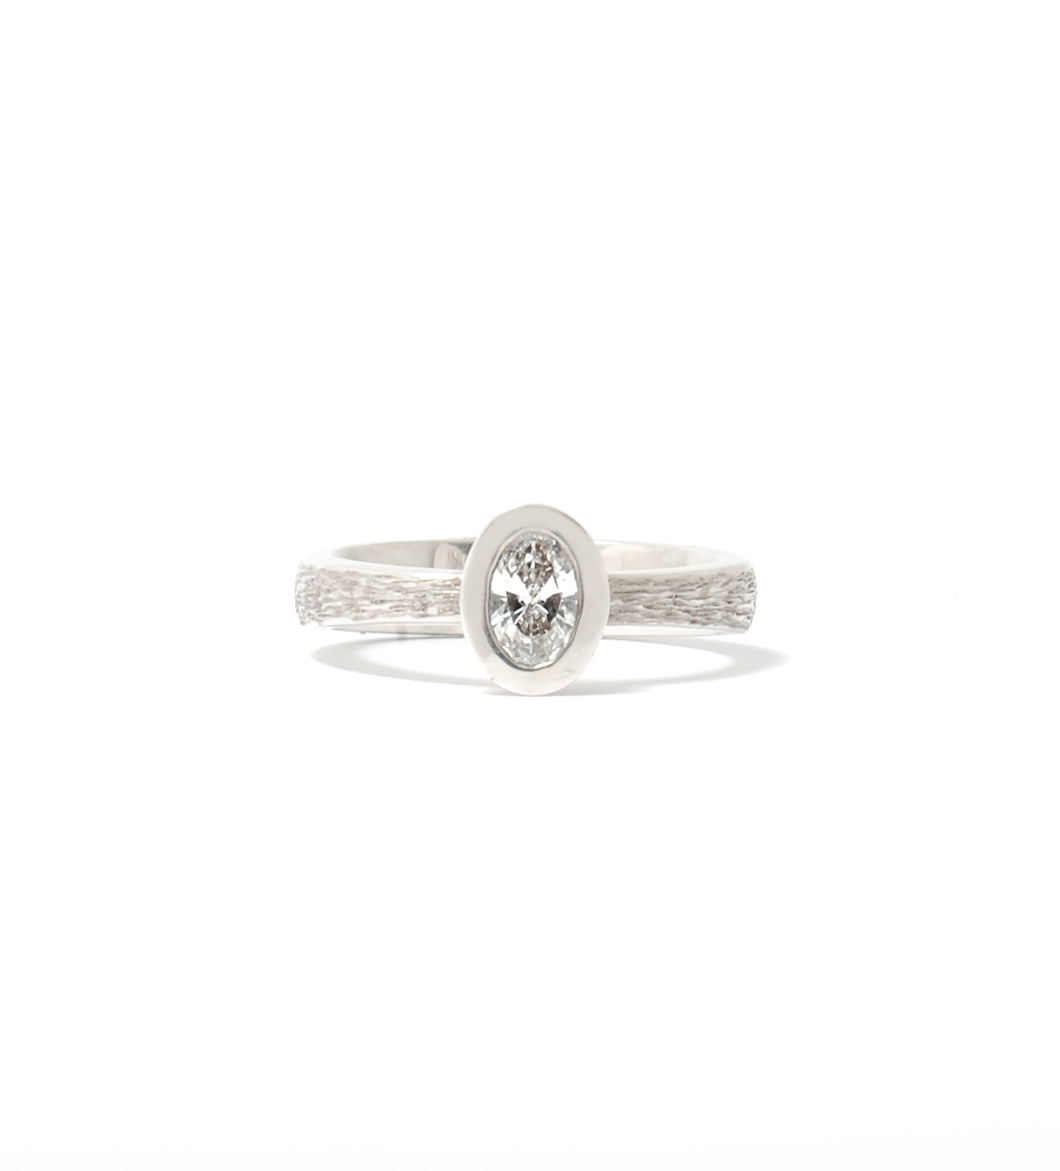 Oval stream bezel solitaire